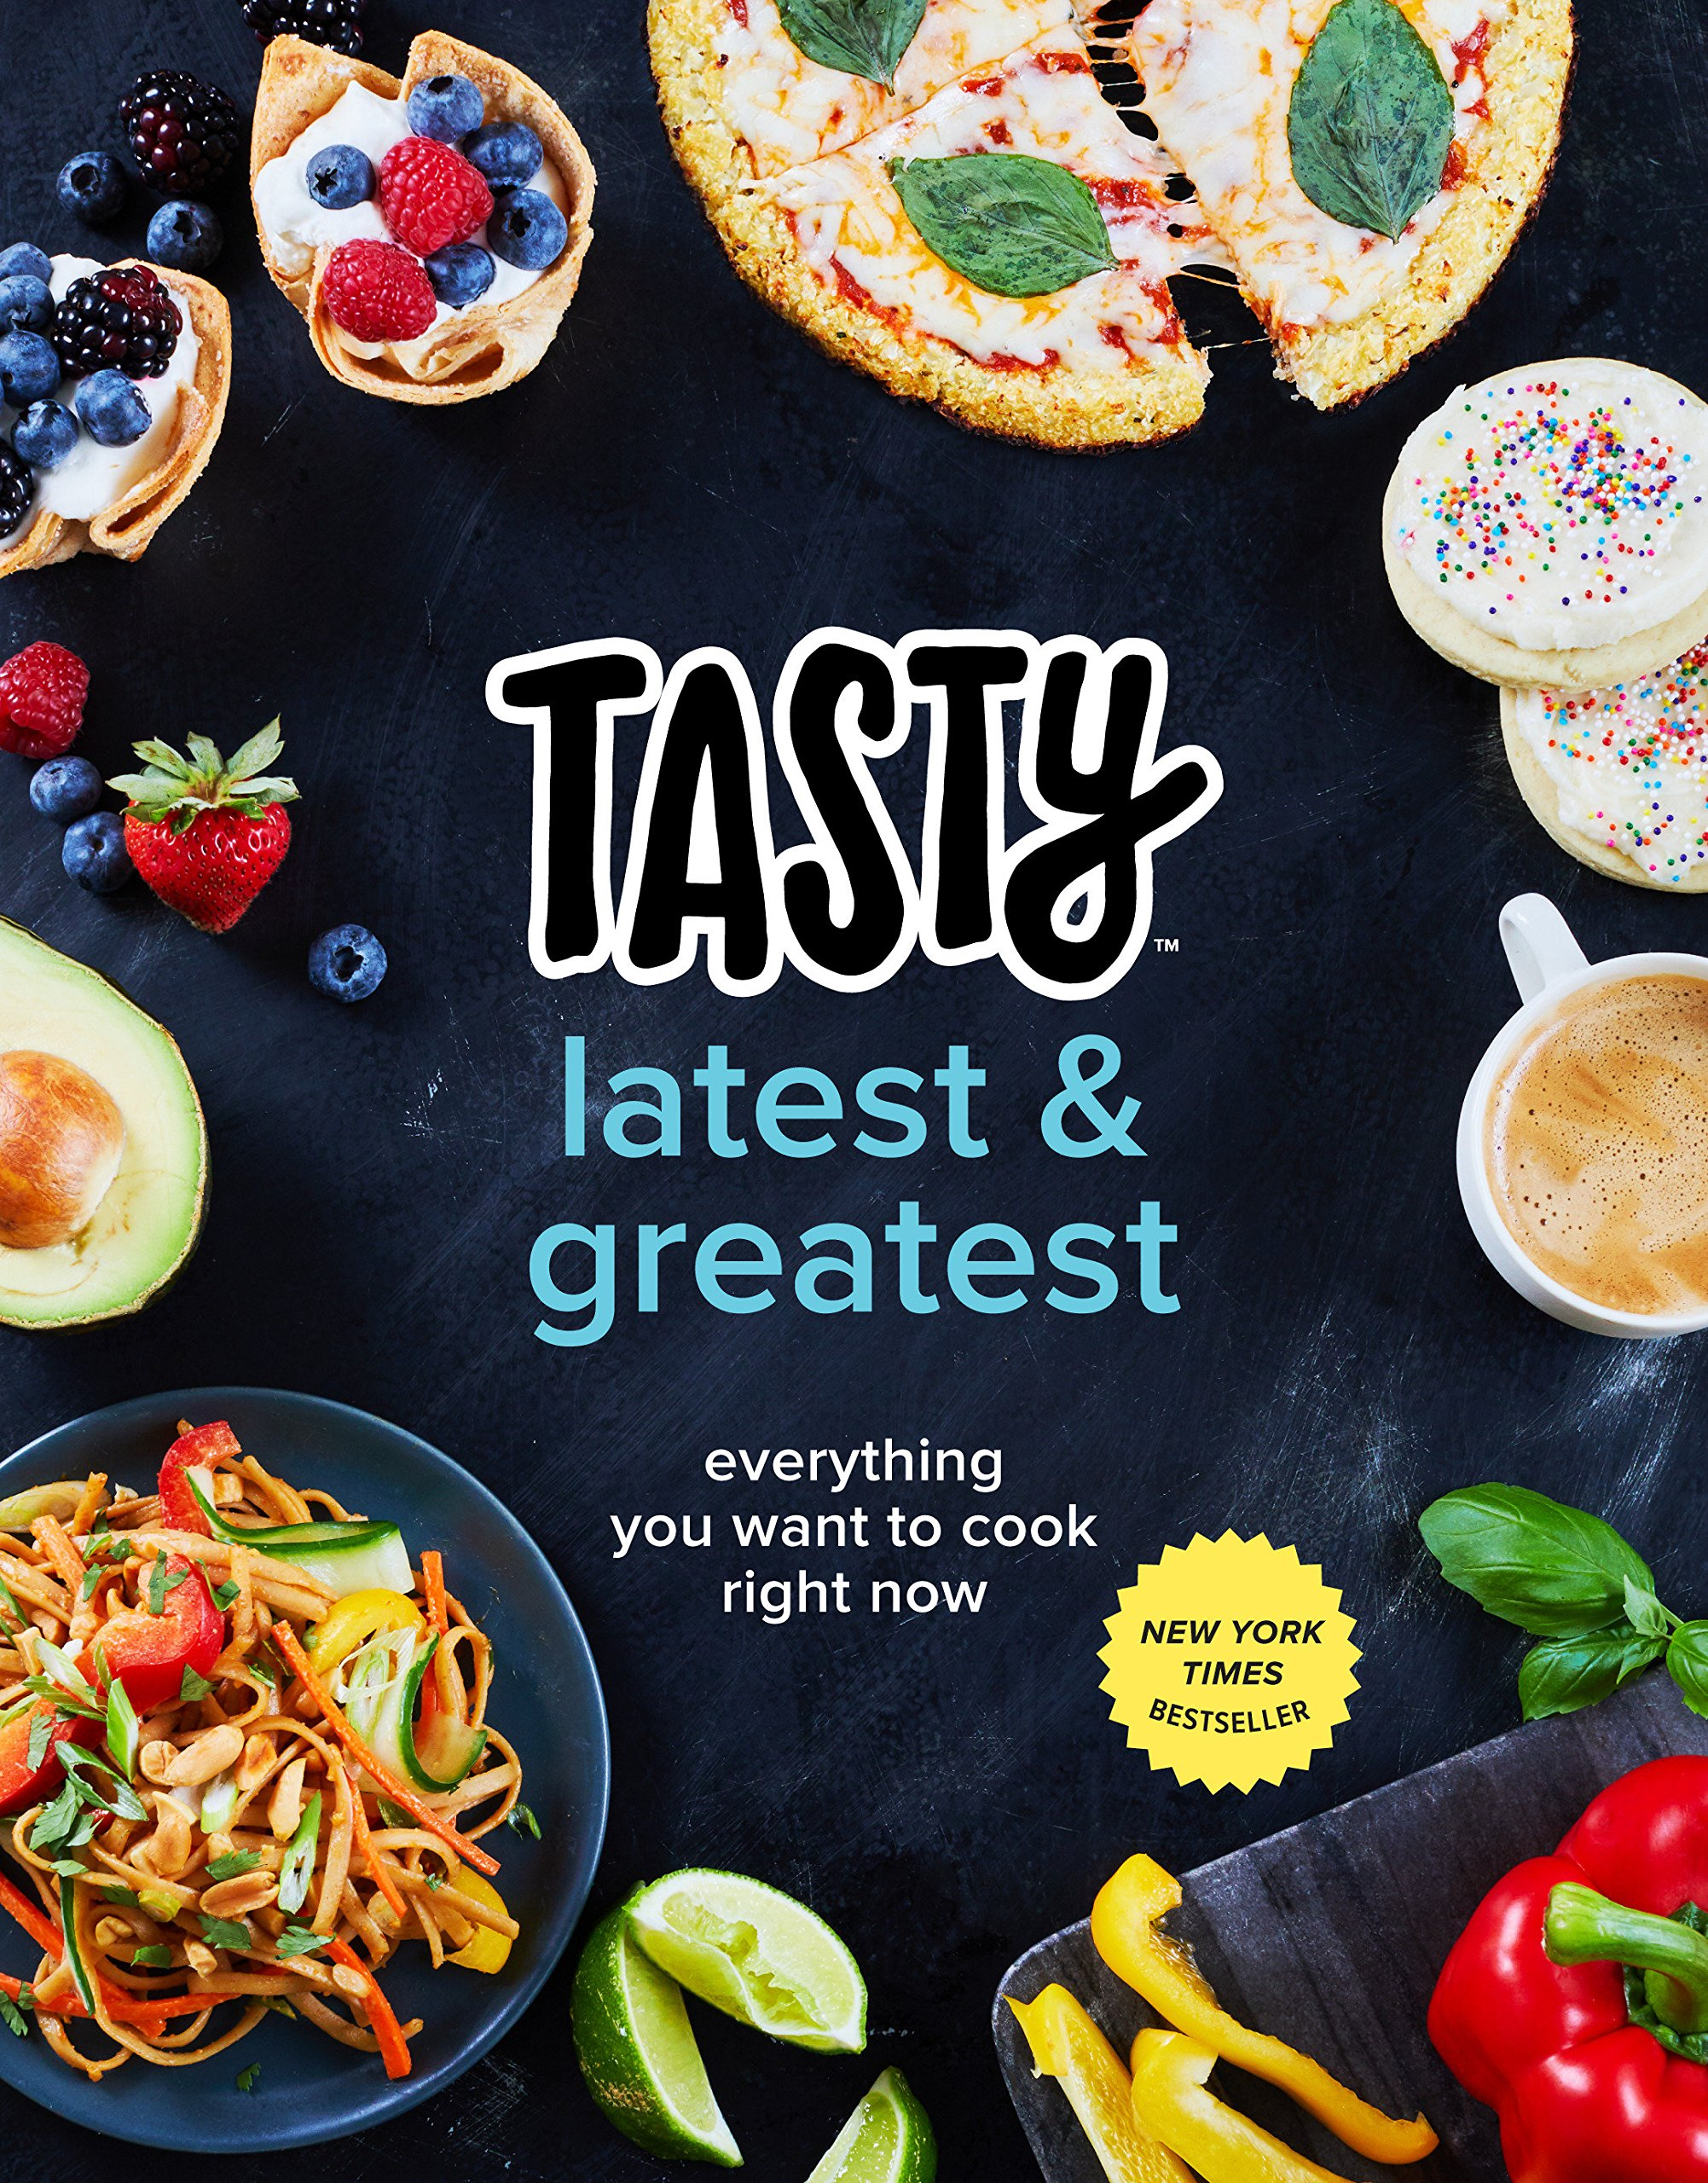 Tasty Latest and Greatest: Everything You Want to Cook Right Now (An Official Tasty Cookbook) - A1Pcz6GPIJL - Tasty Latest and Greatest: Everything You Want to Cook Right Now (An Official Tasty Cookbook)